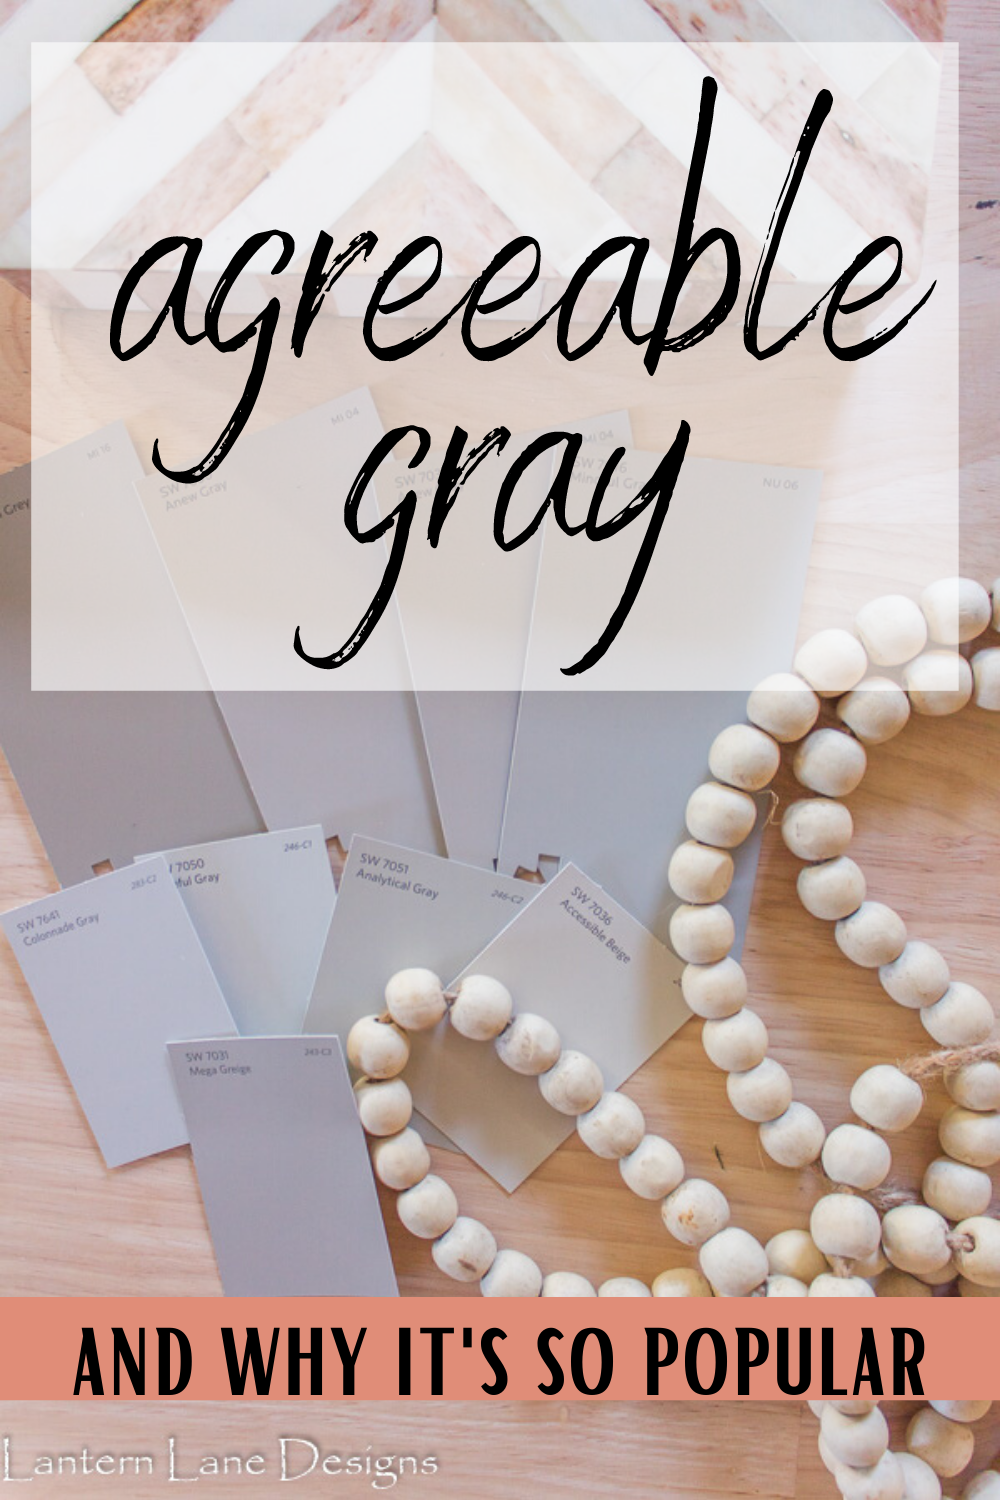 Sherwin Williams Agreeable Gray~A soft gray paint color that works great in any space in your home and pairs nicely with almost any paint color #homedecor #modernfarmhouse #diyhomedecor